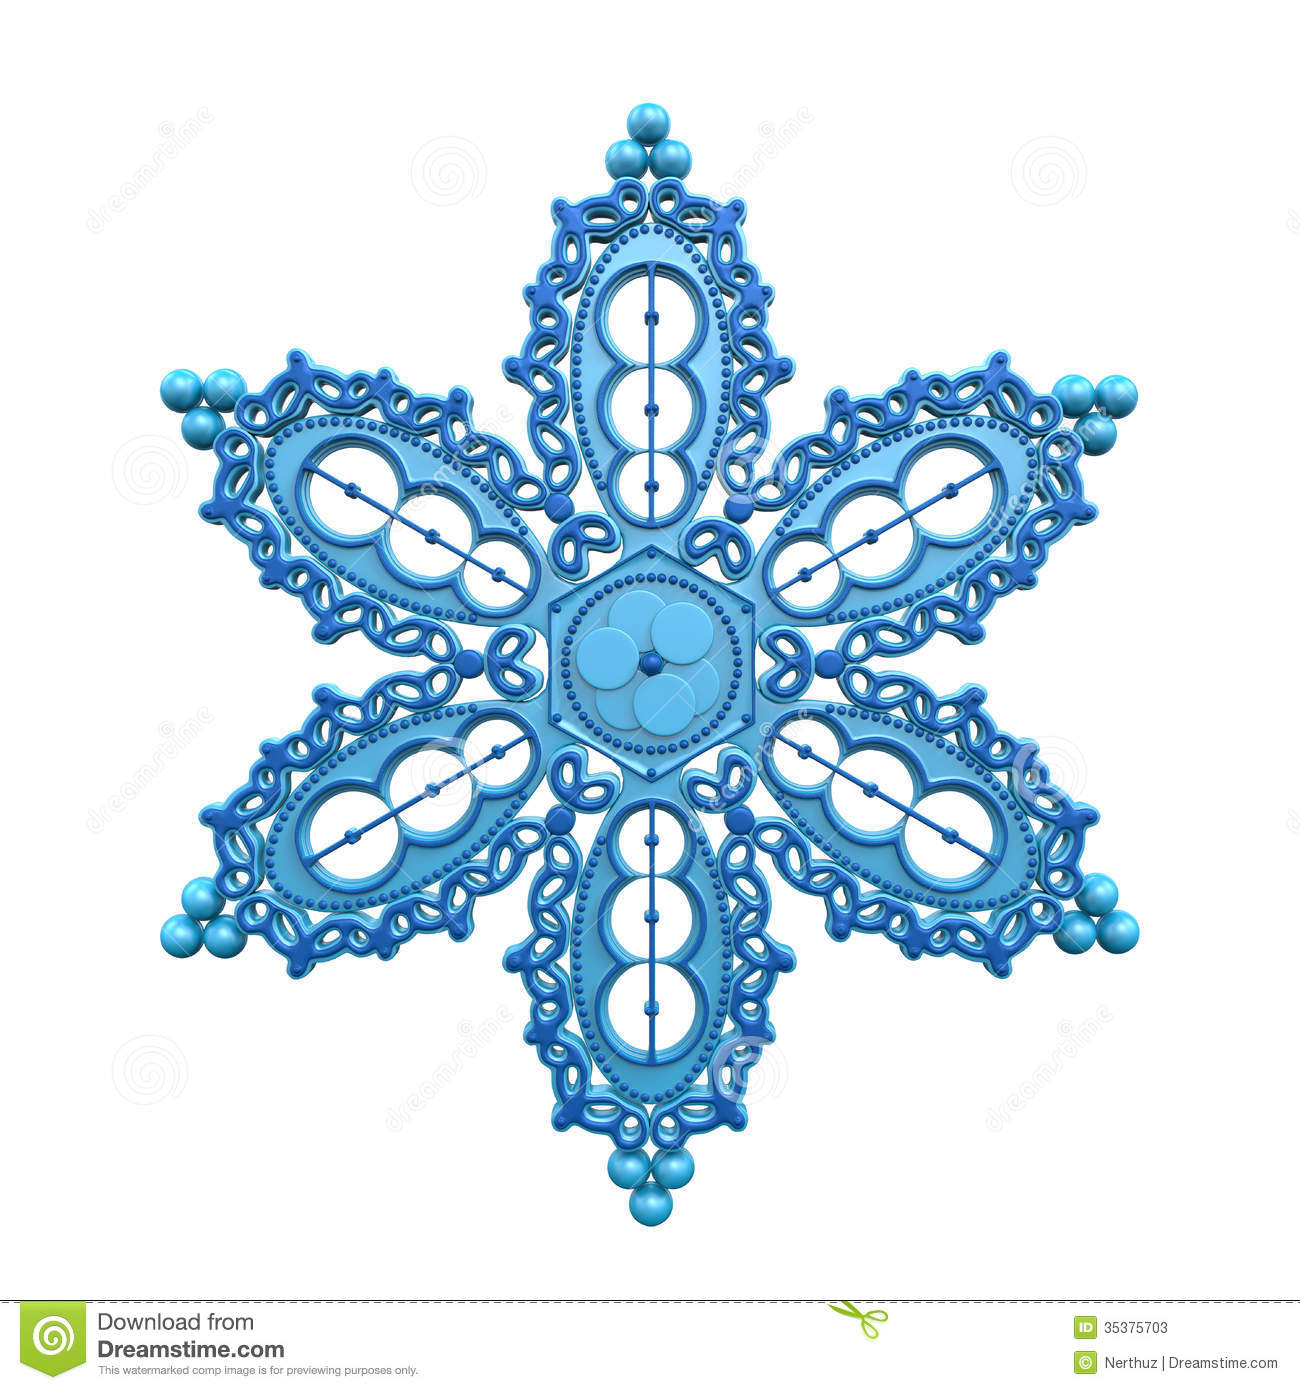 Christmas Snowflake Isolated on white background. 3D render.